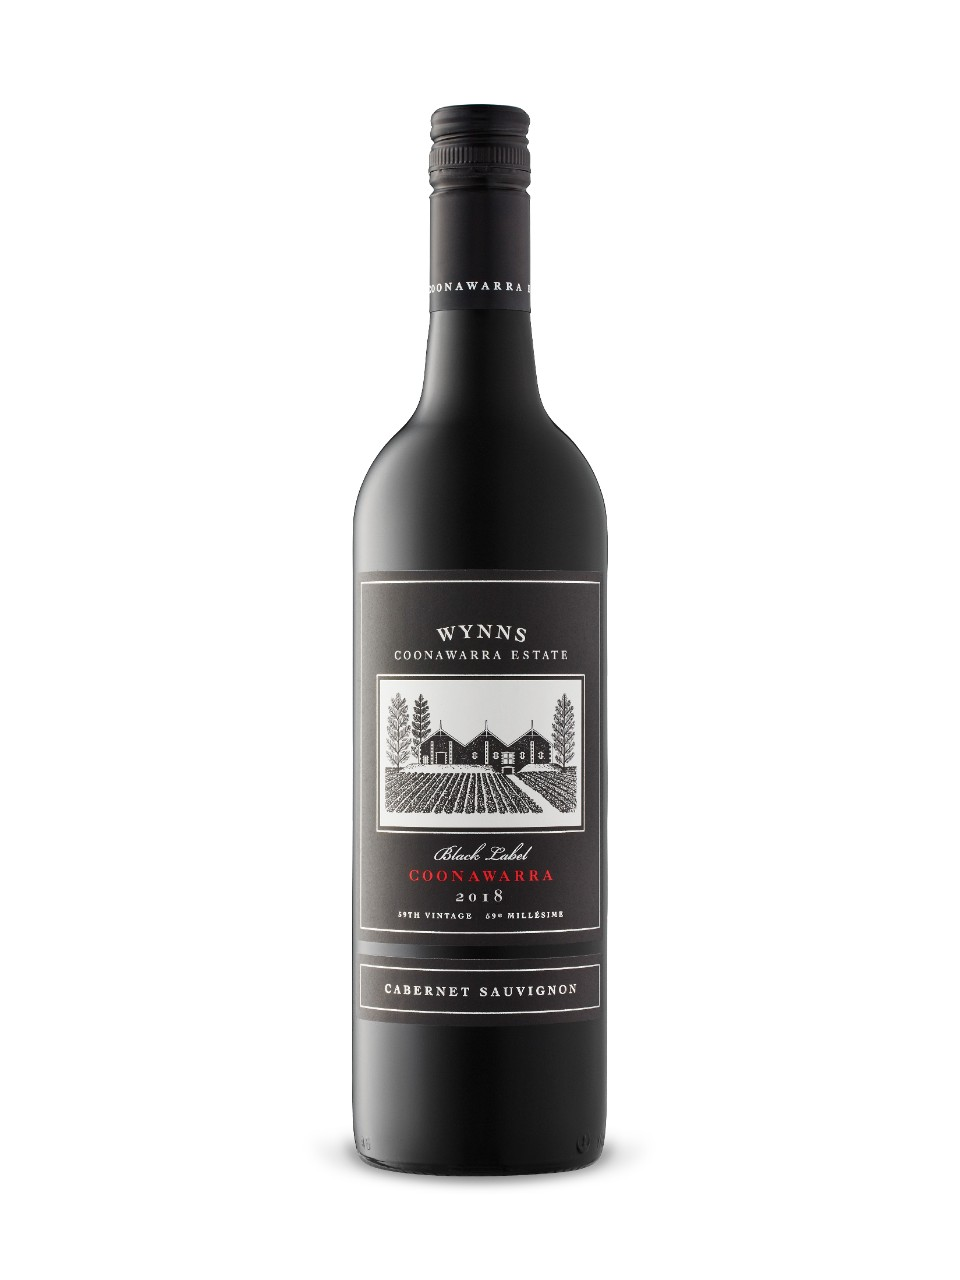 Cabernet Sauvignon Black Label Coonawarra Estate Wynns 2014